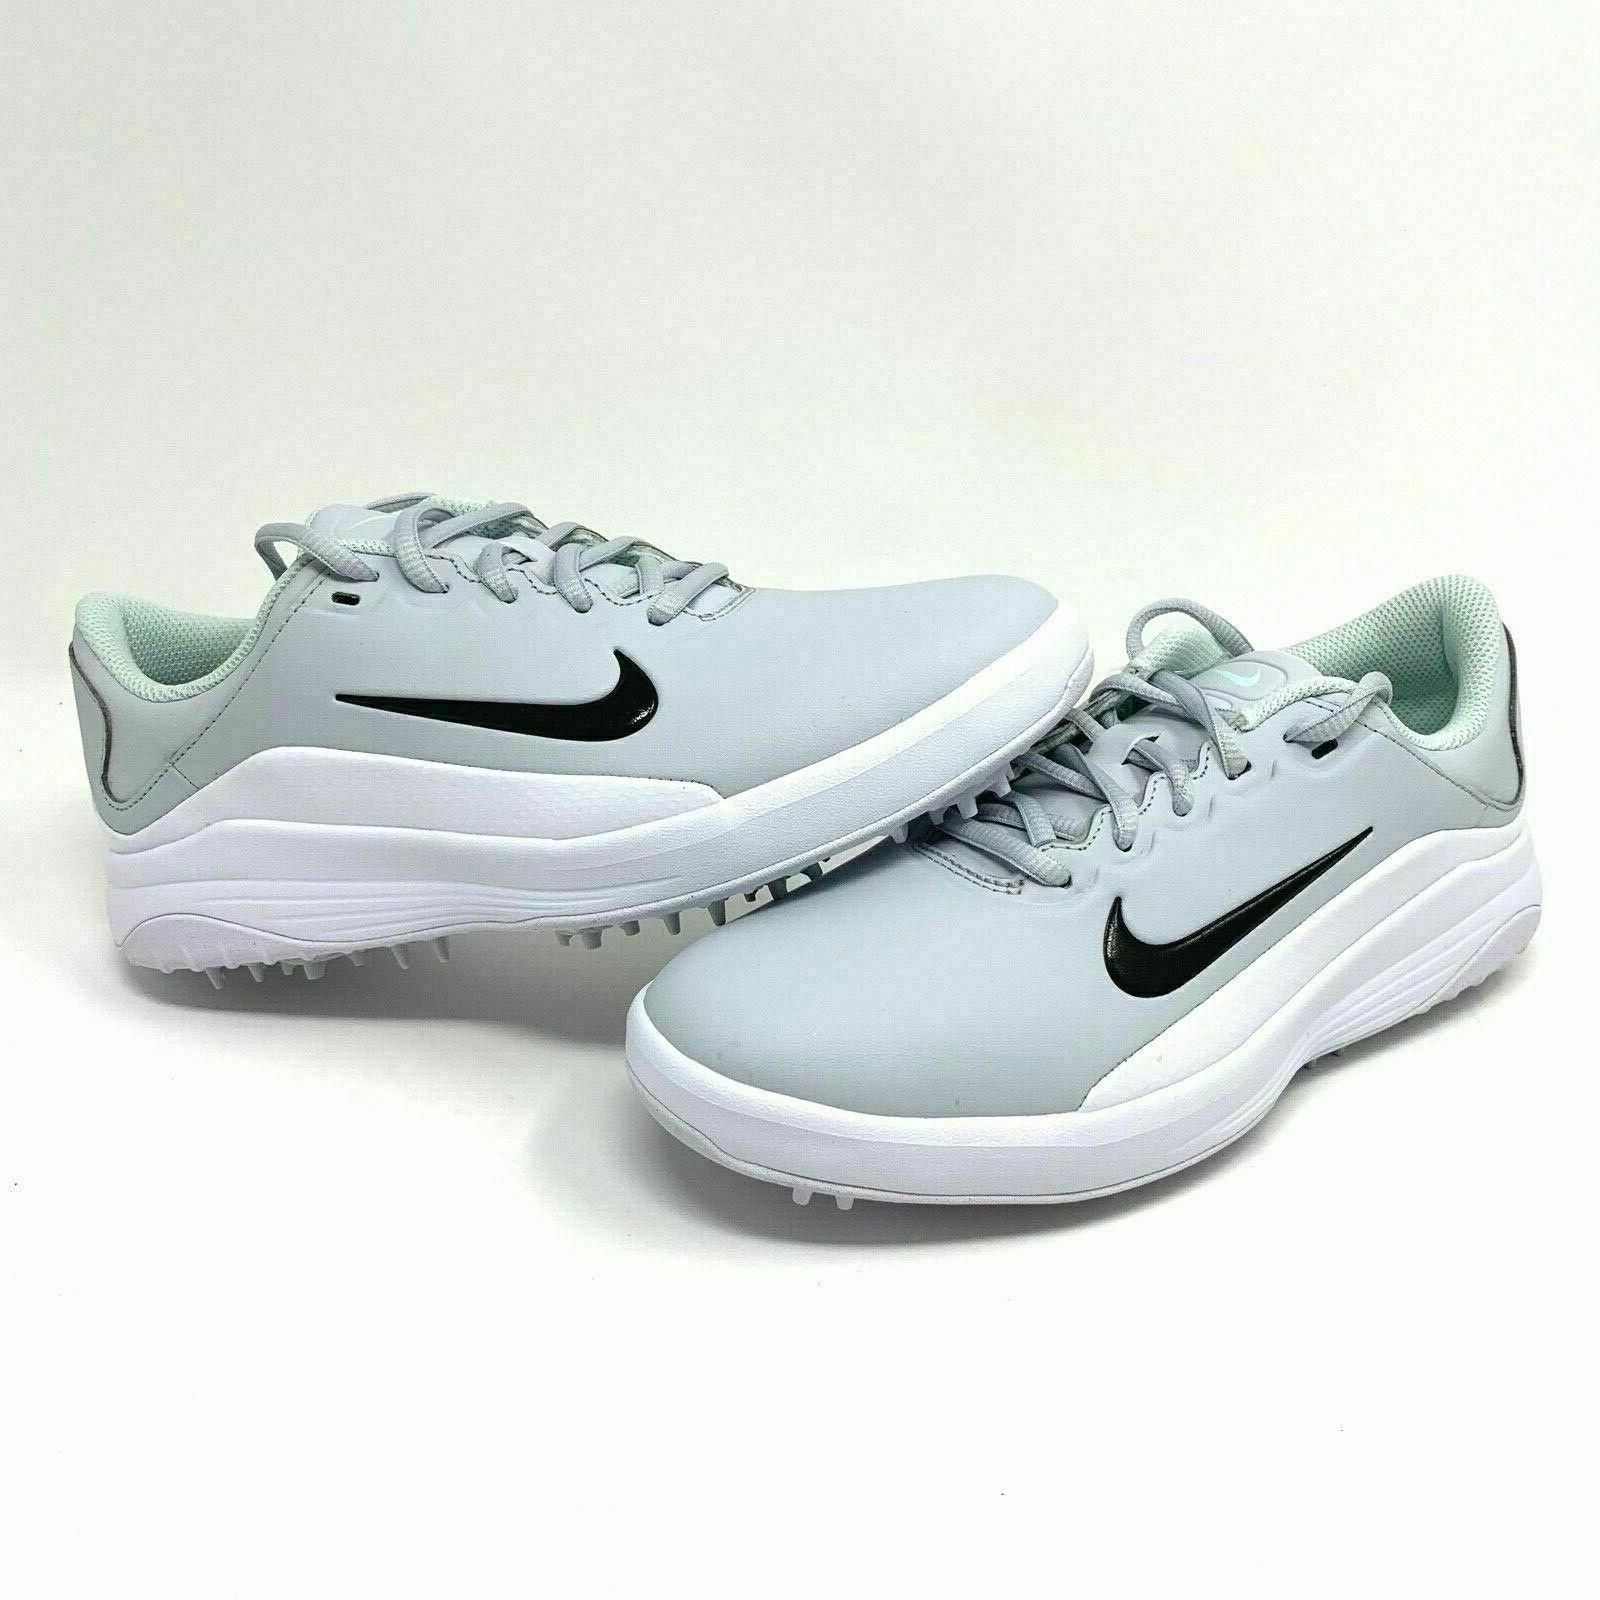 Nike Vapor Golf Shoes Pure - New